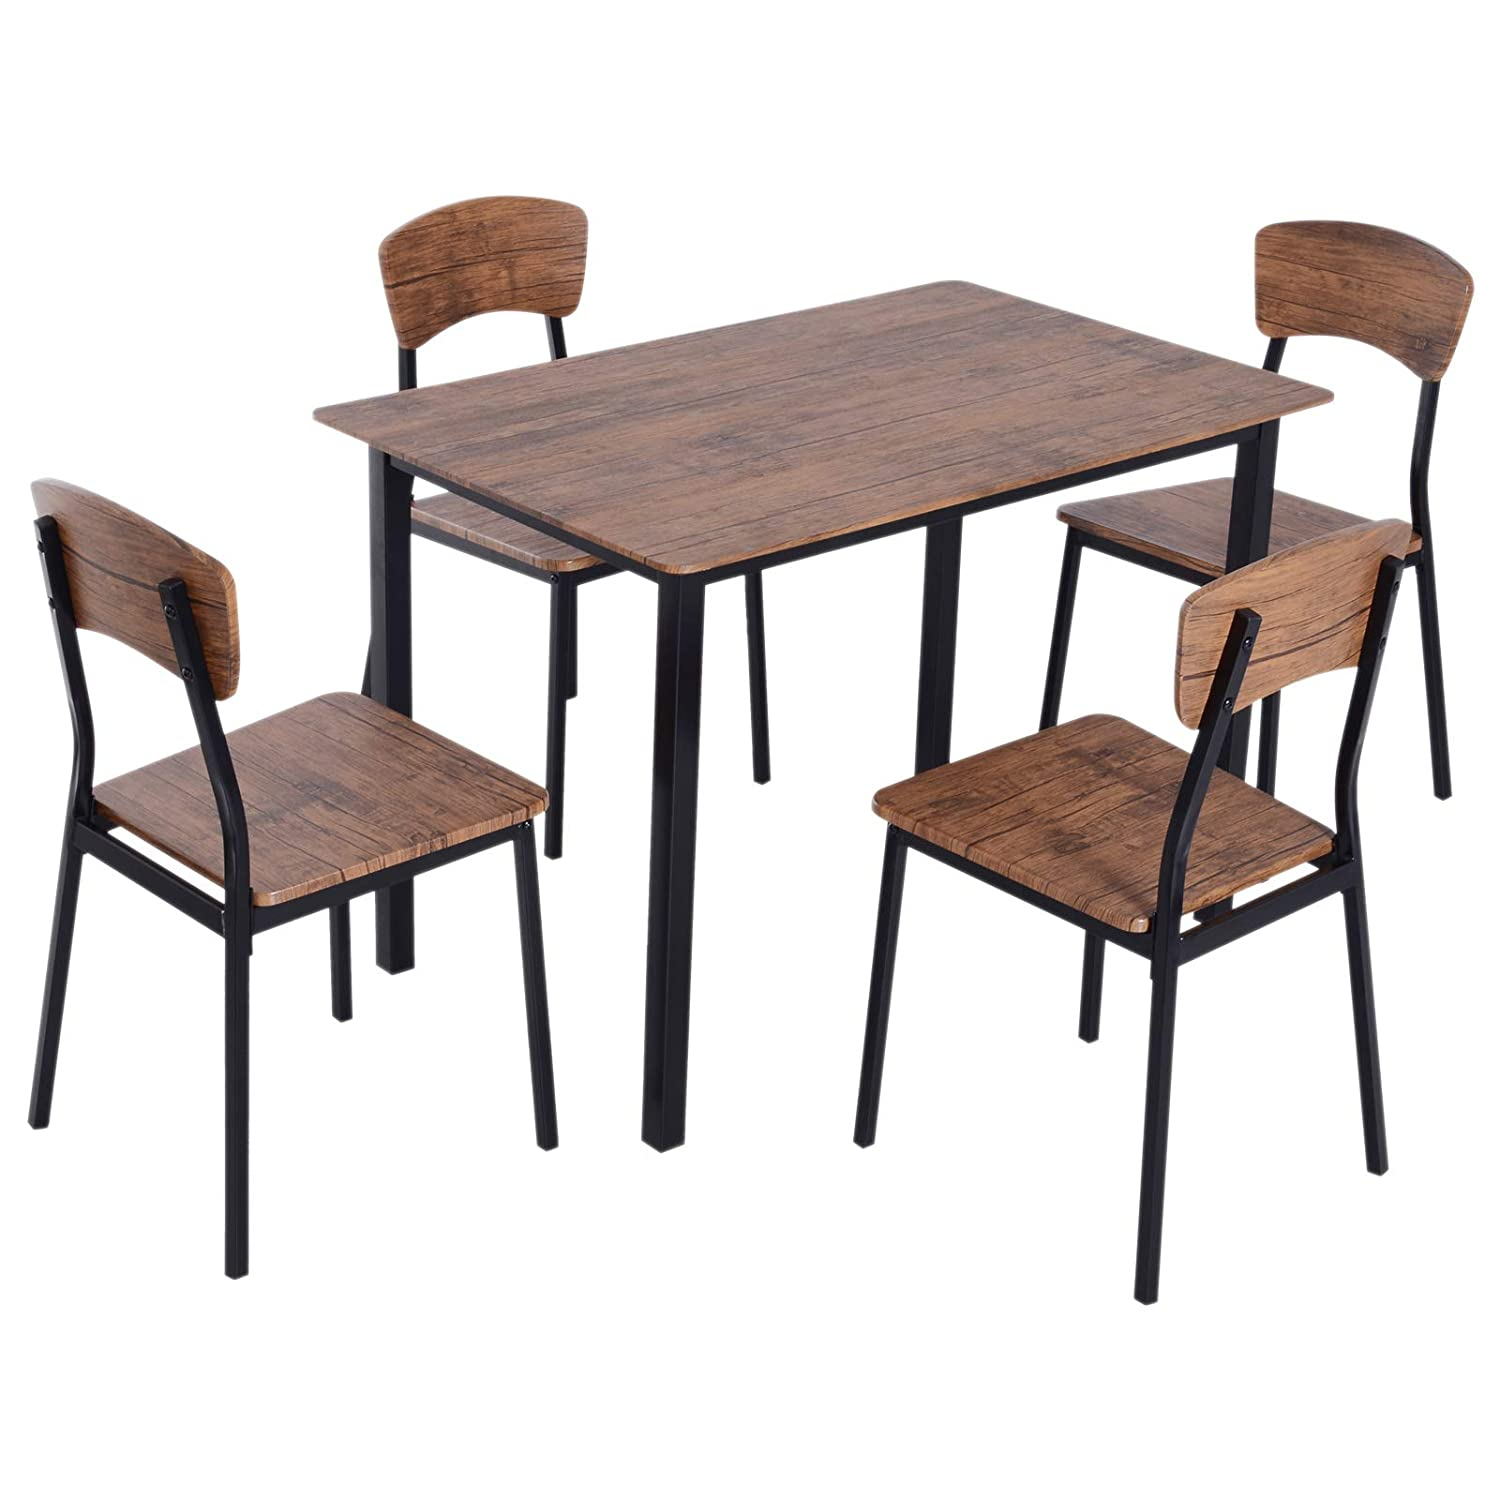 Incredible Homcom 5 Piece Modern Counter Height Dining Table And Chairs Set Spiritservingveterans Wood Chair Design Ideas Spiritservingveteransorg